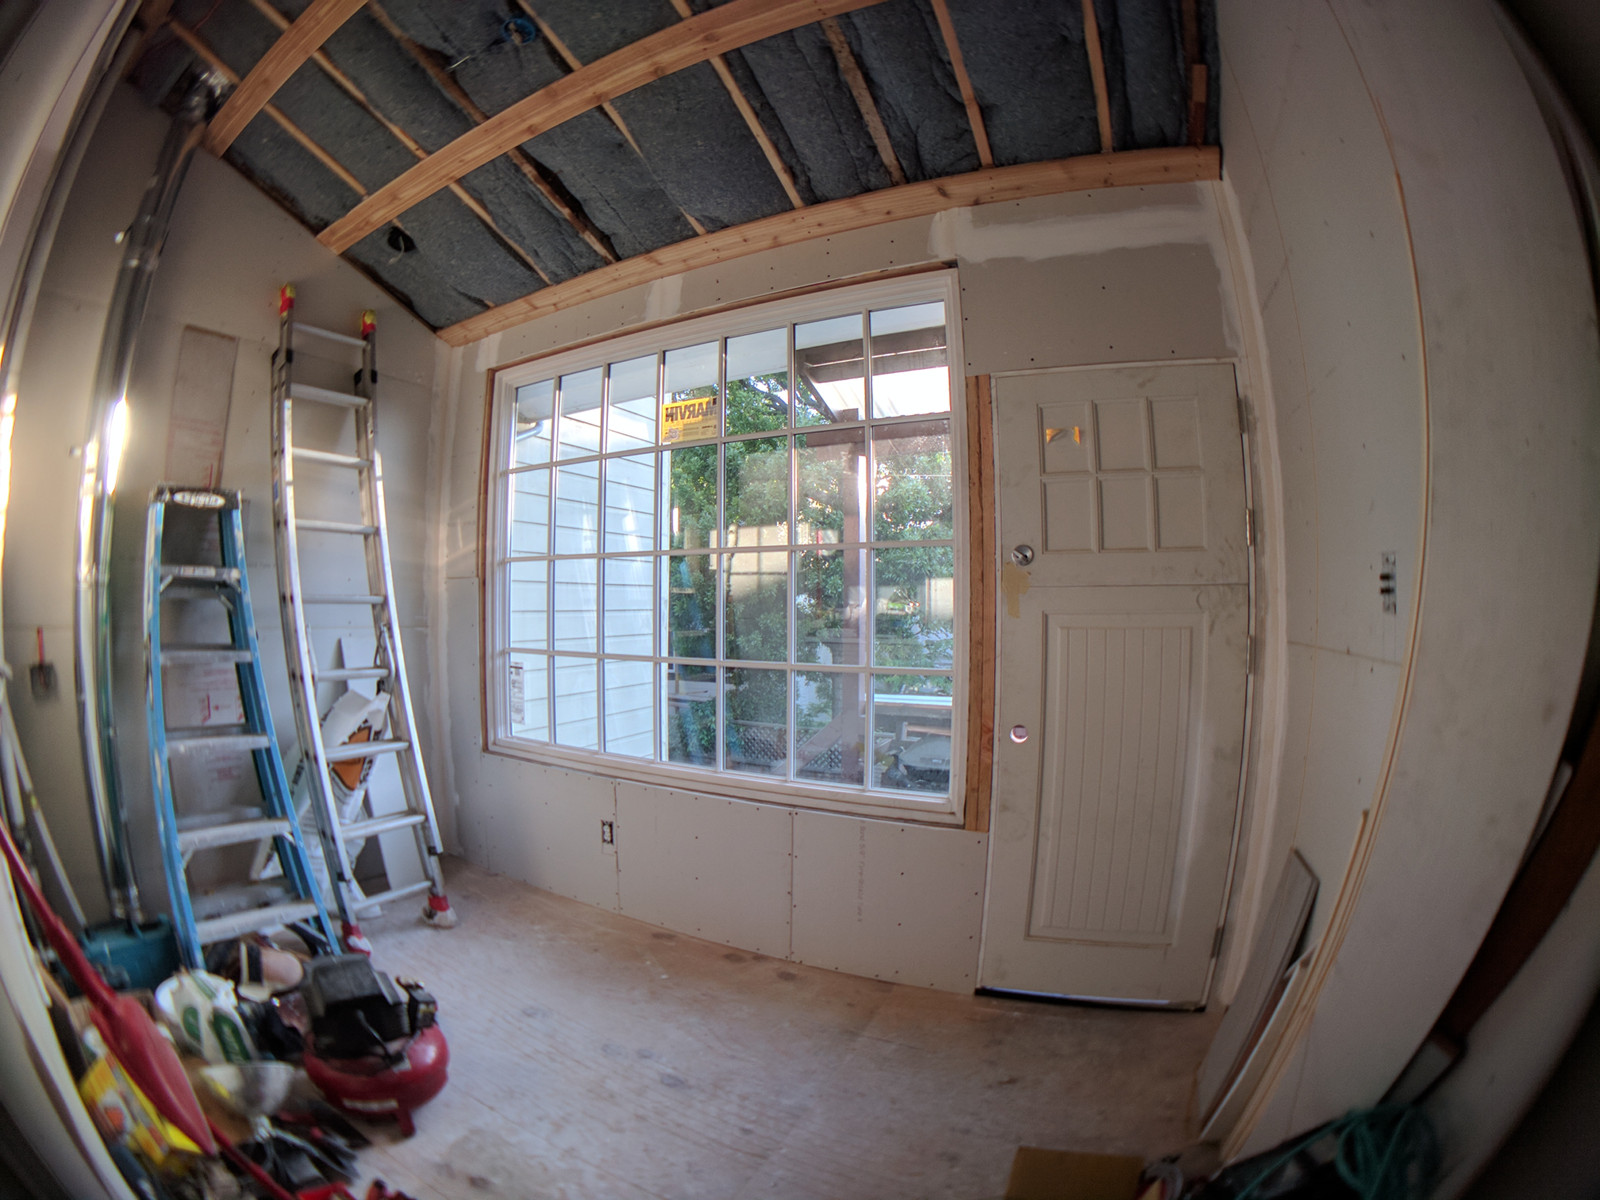 Dining nook renovations in progress